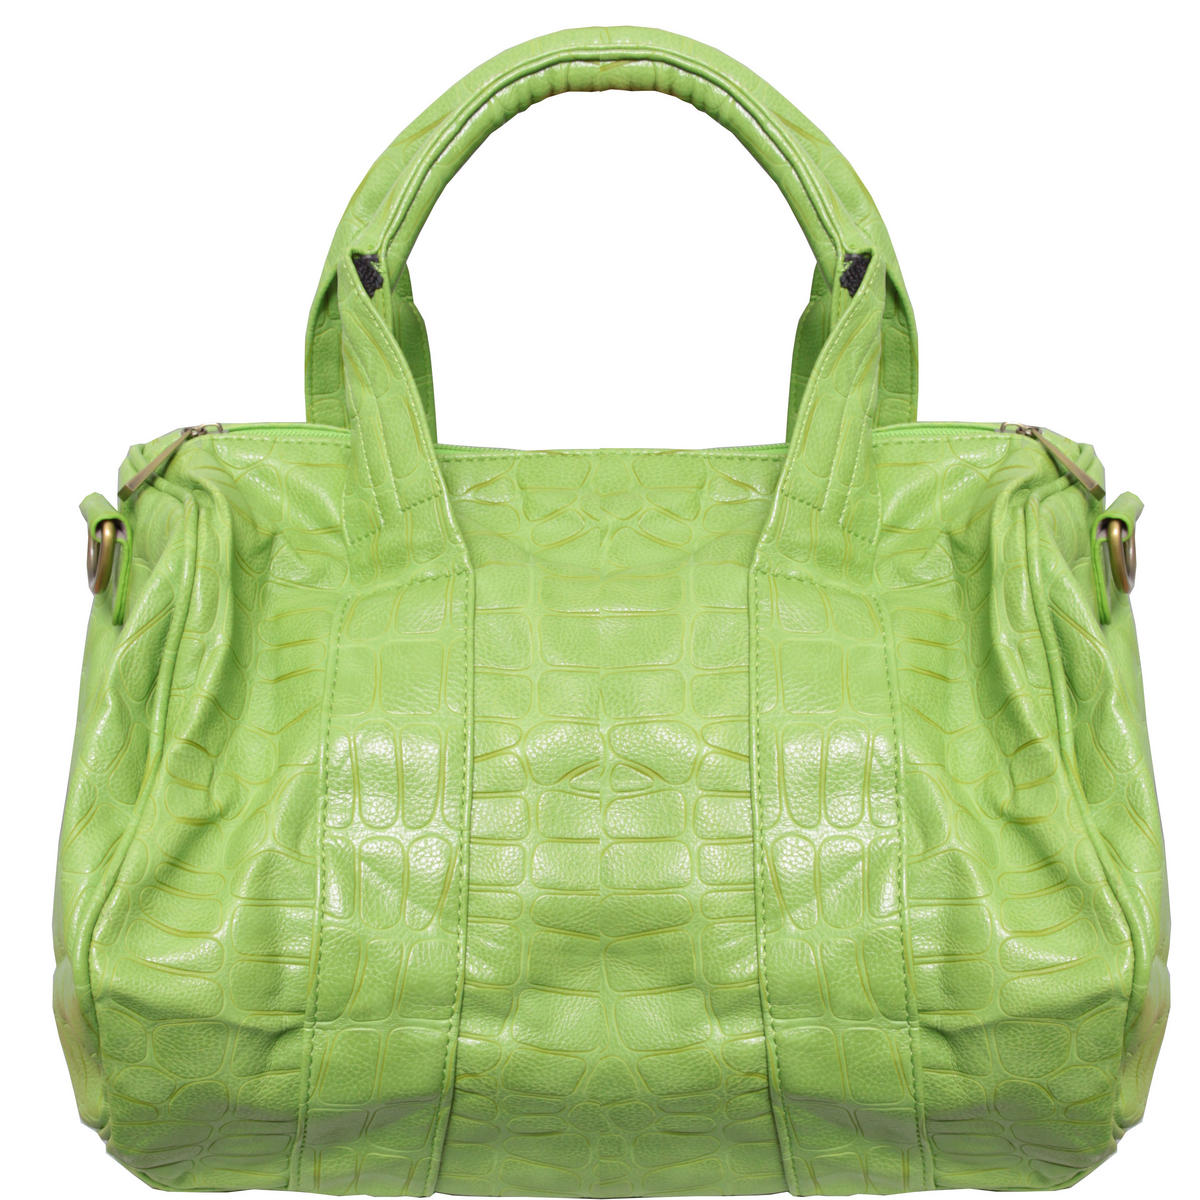 Acid Green Faux Animal Skin Handbag Preview